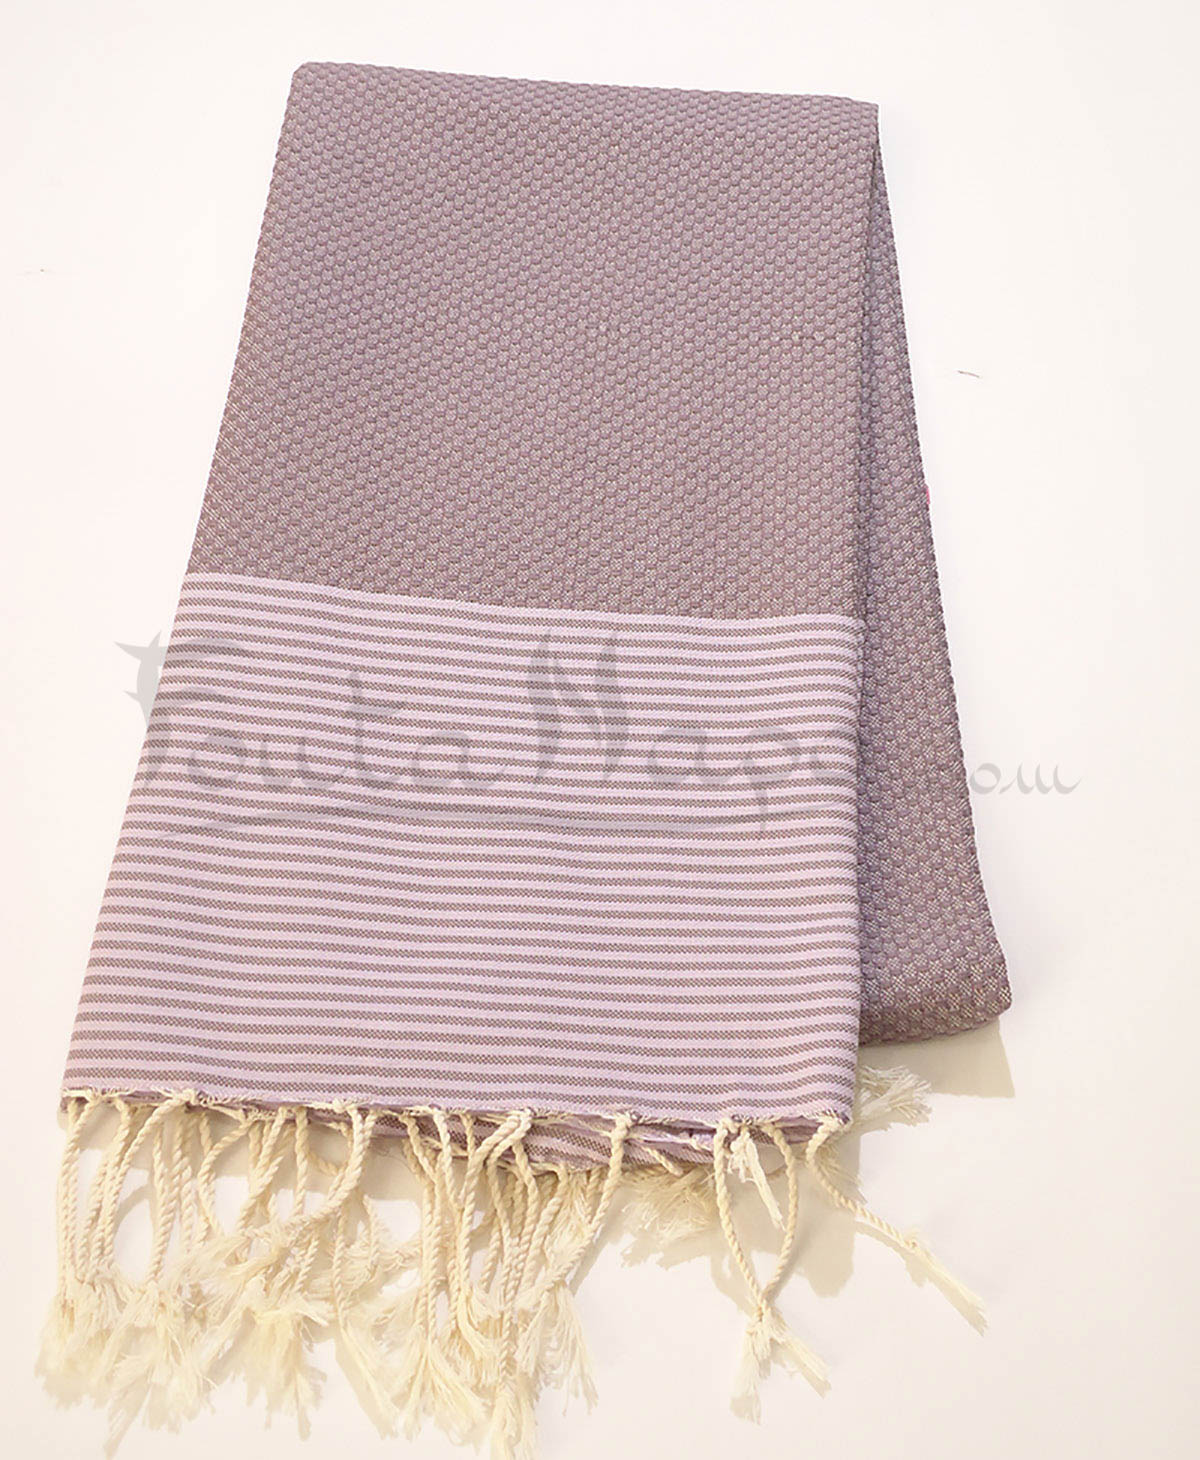 The Fouta Towel Honeycomb thin Stripes